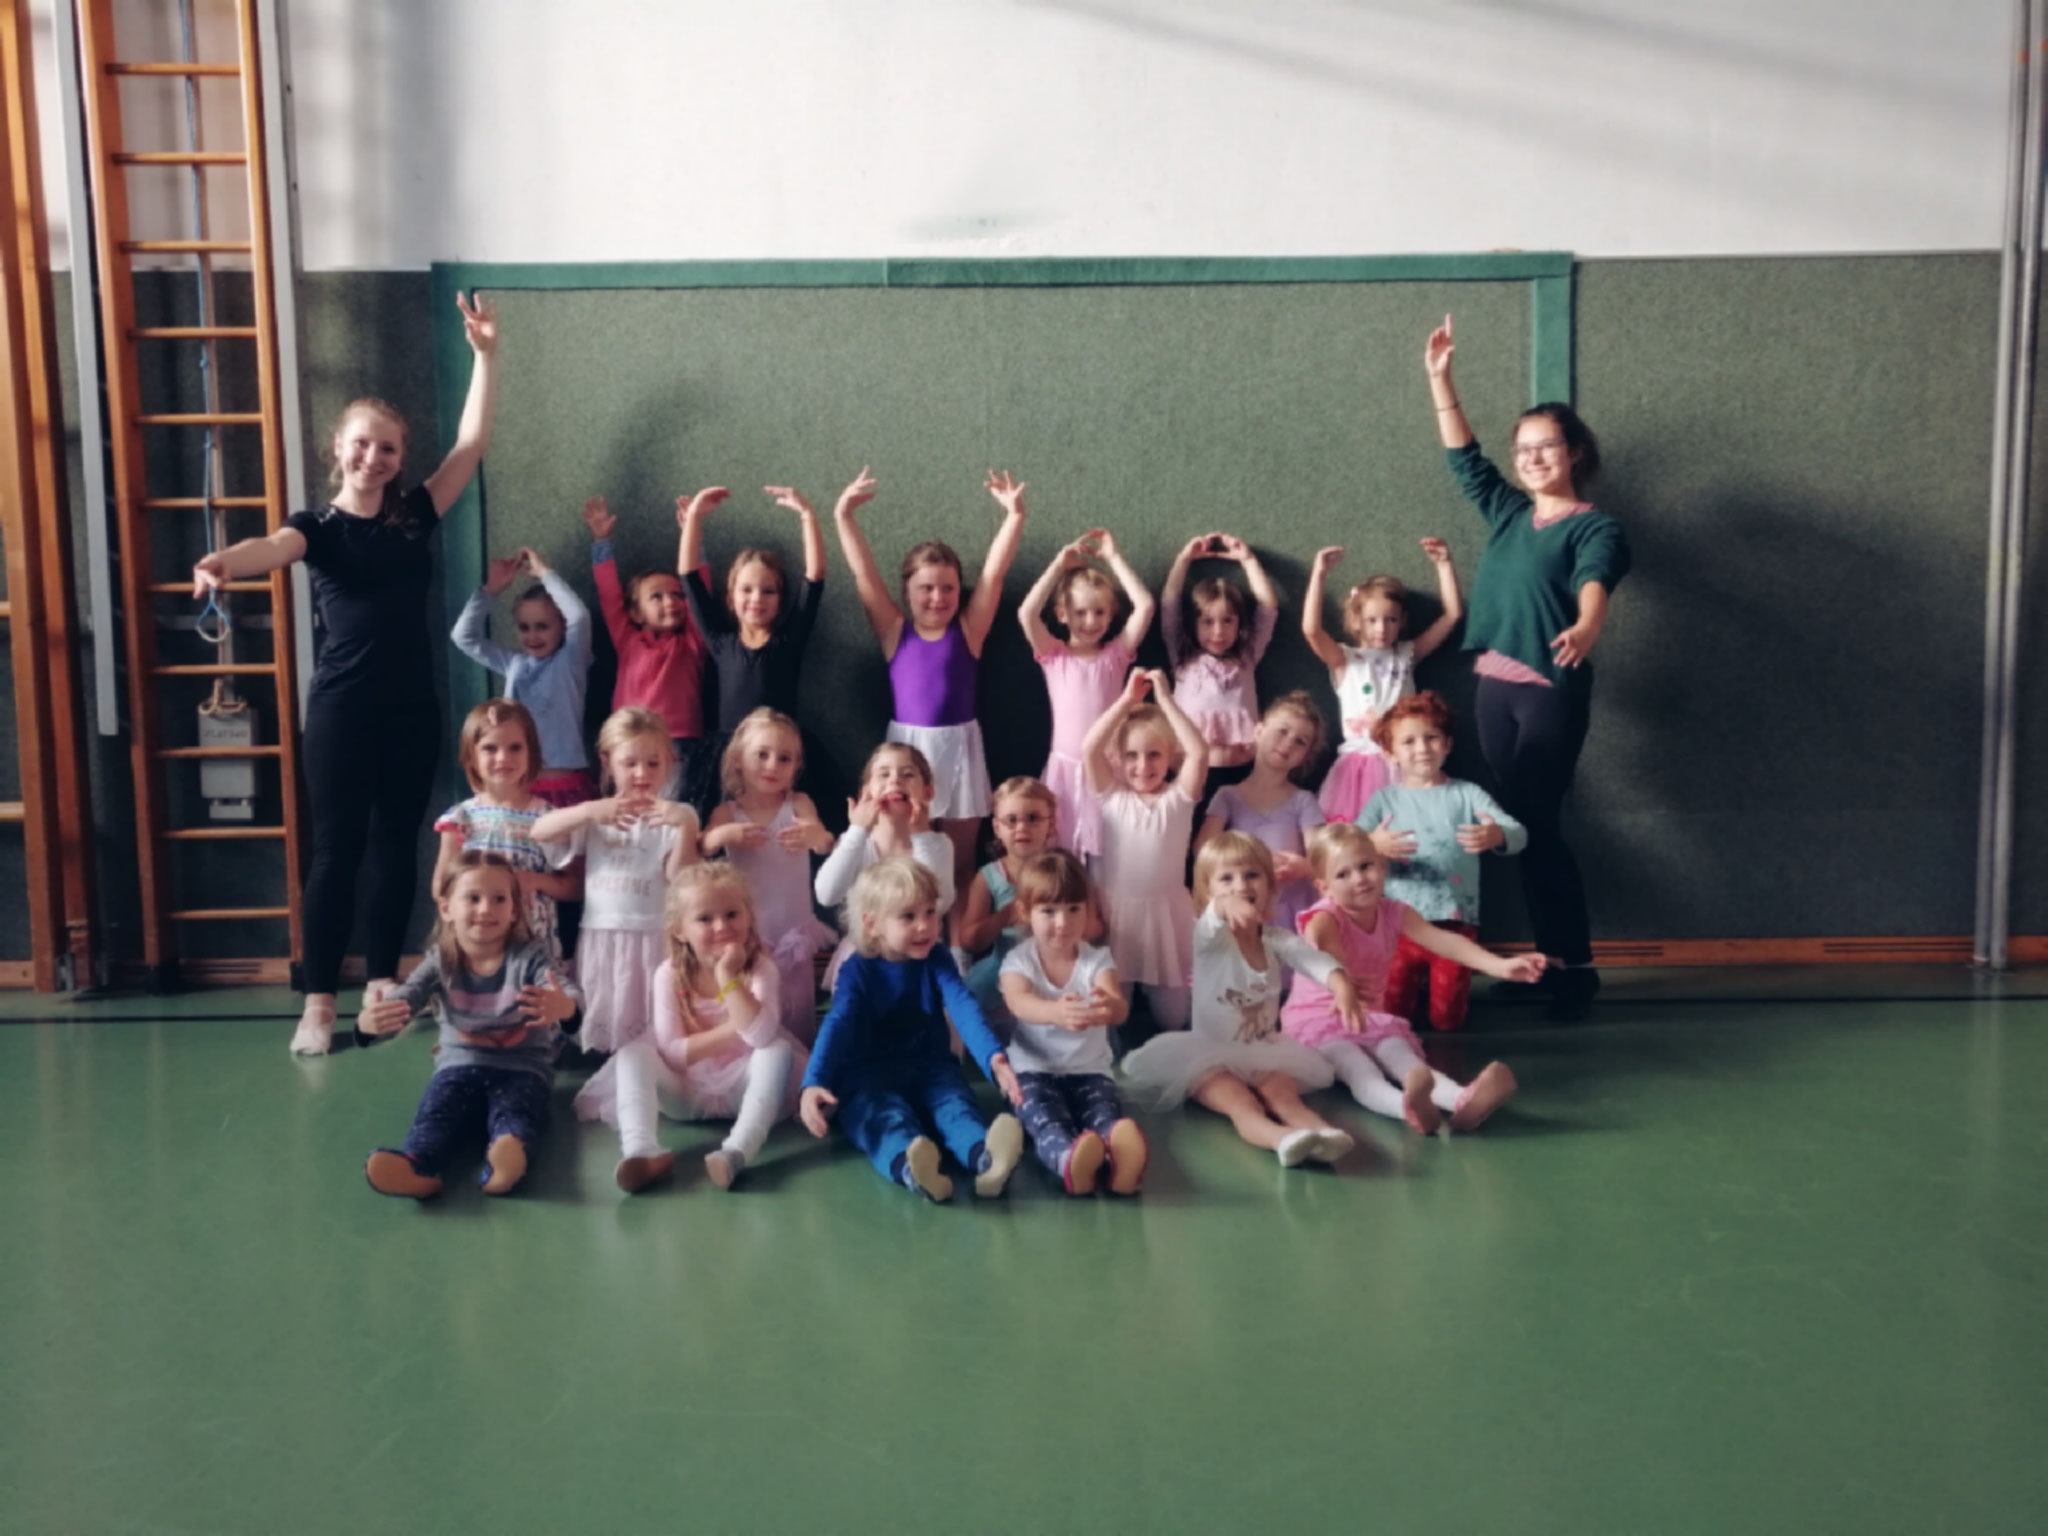 Ballett Kiddies 1 - Kathi D. und Juliane